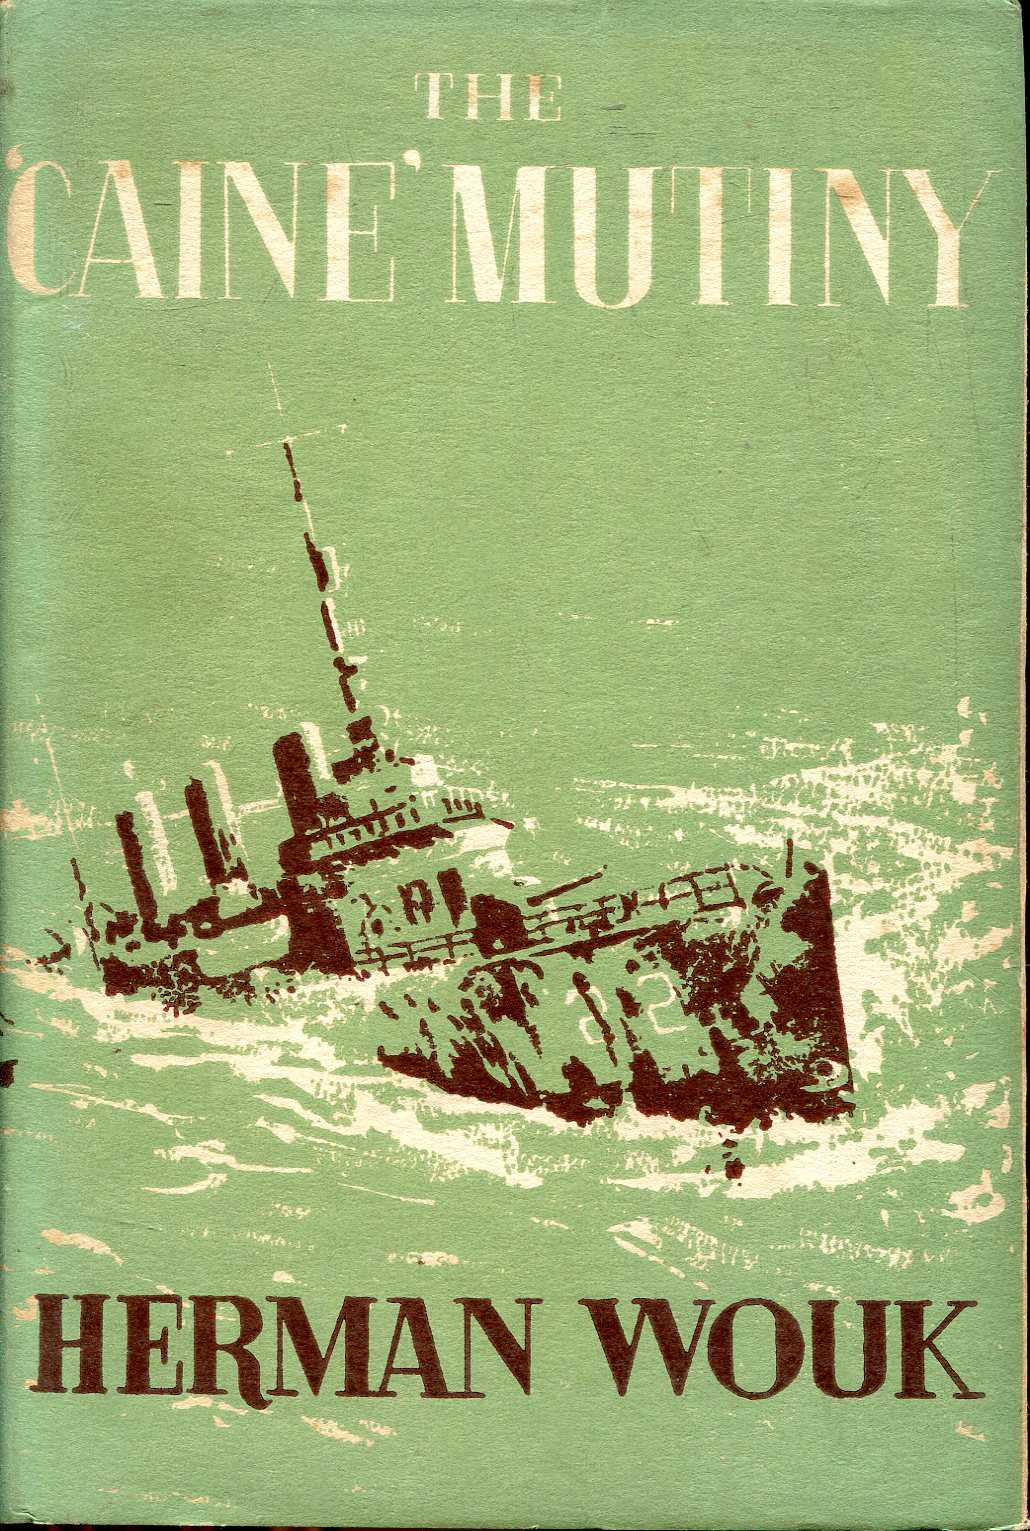 Image for The Caine Mutiny